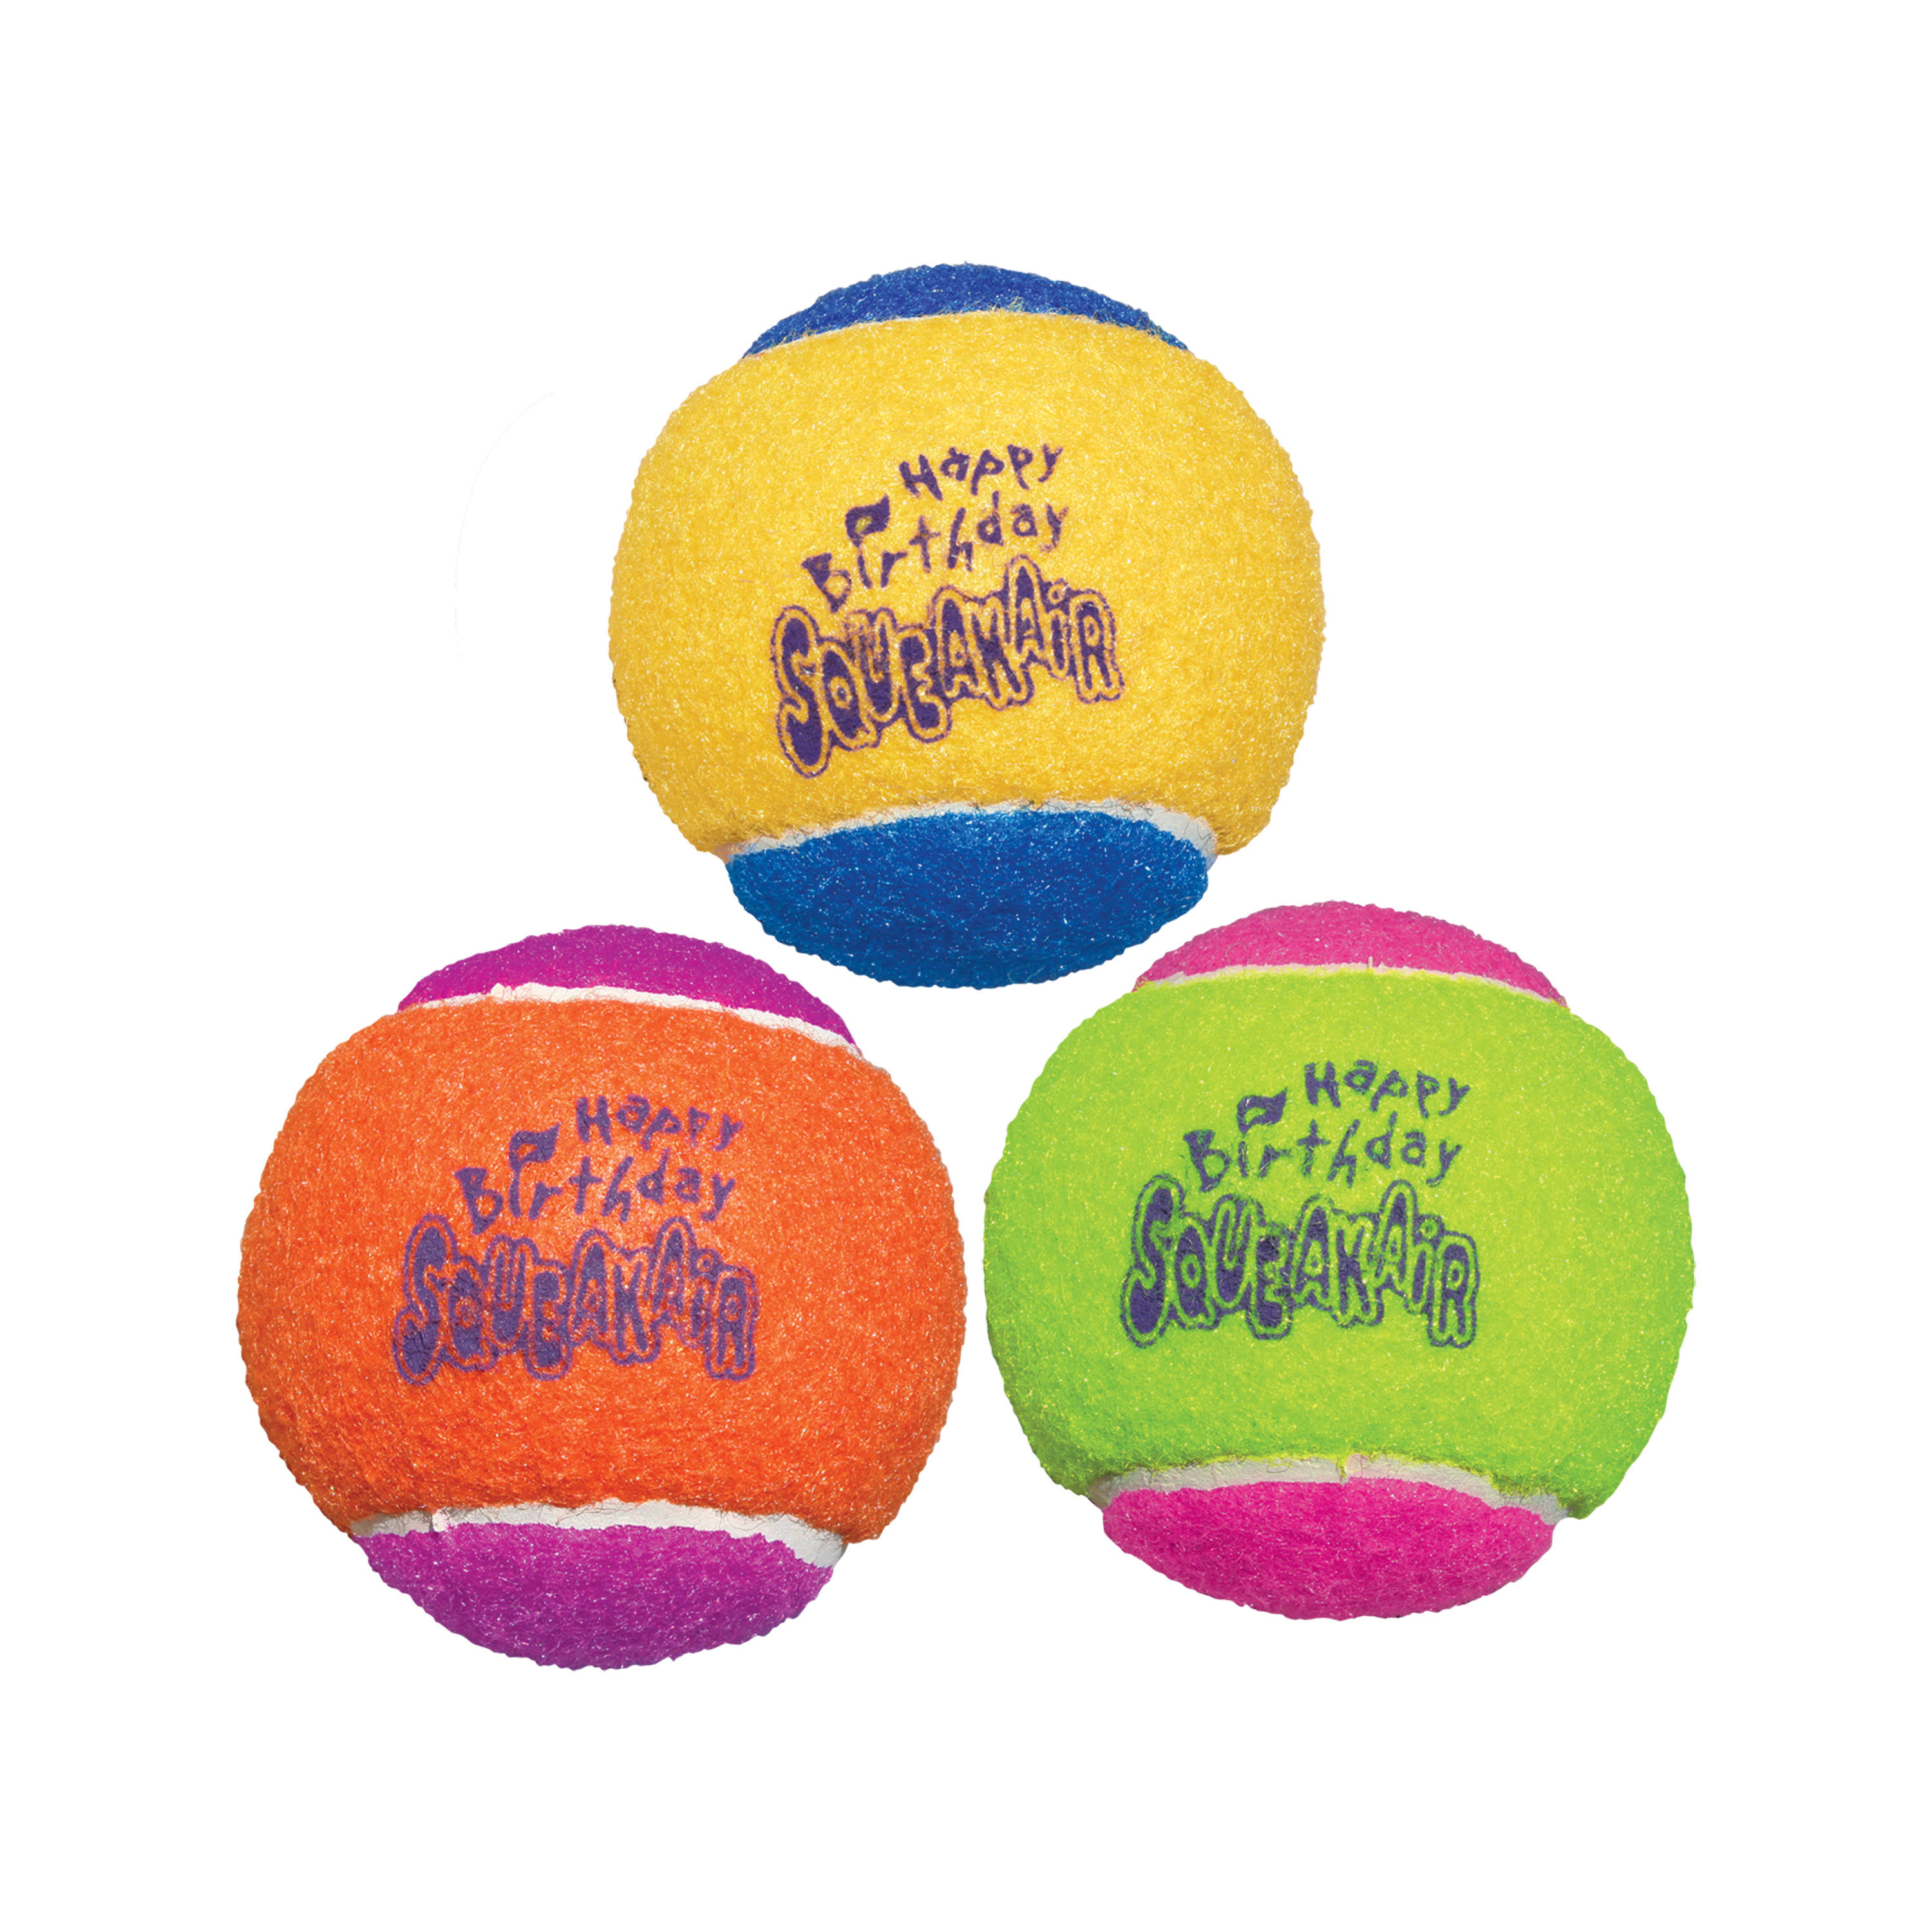 Kong Air Dog Squeakair Birthday Balls Dog Toy - Medium, 3 Balls